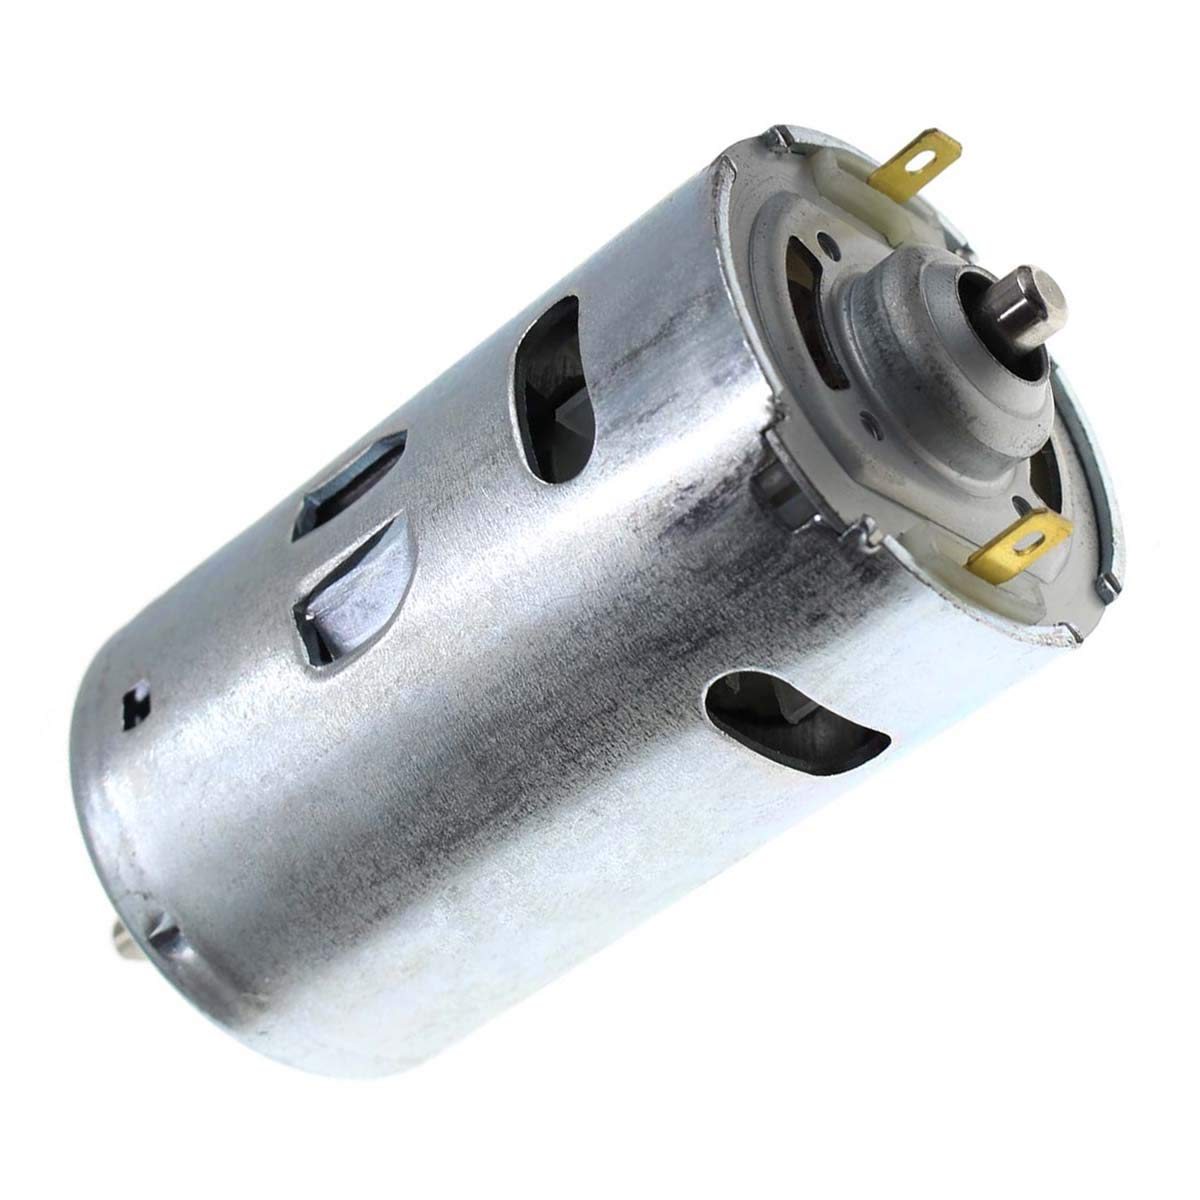 Convertible Top Hydraulic Roof Pump Motor for 2003-2008 BMW Z4 E85 Replace # 54347193448 MOTOALL